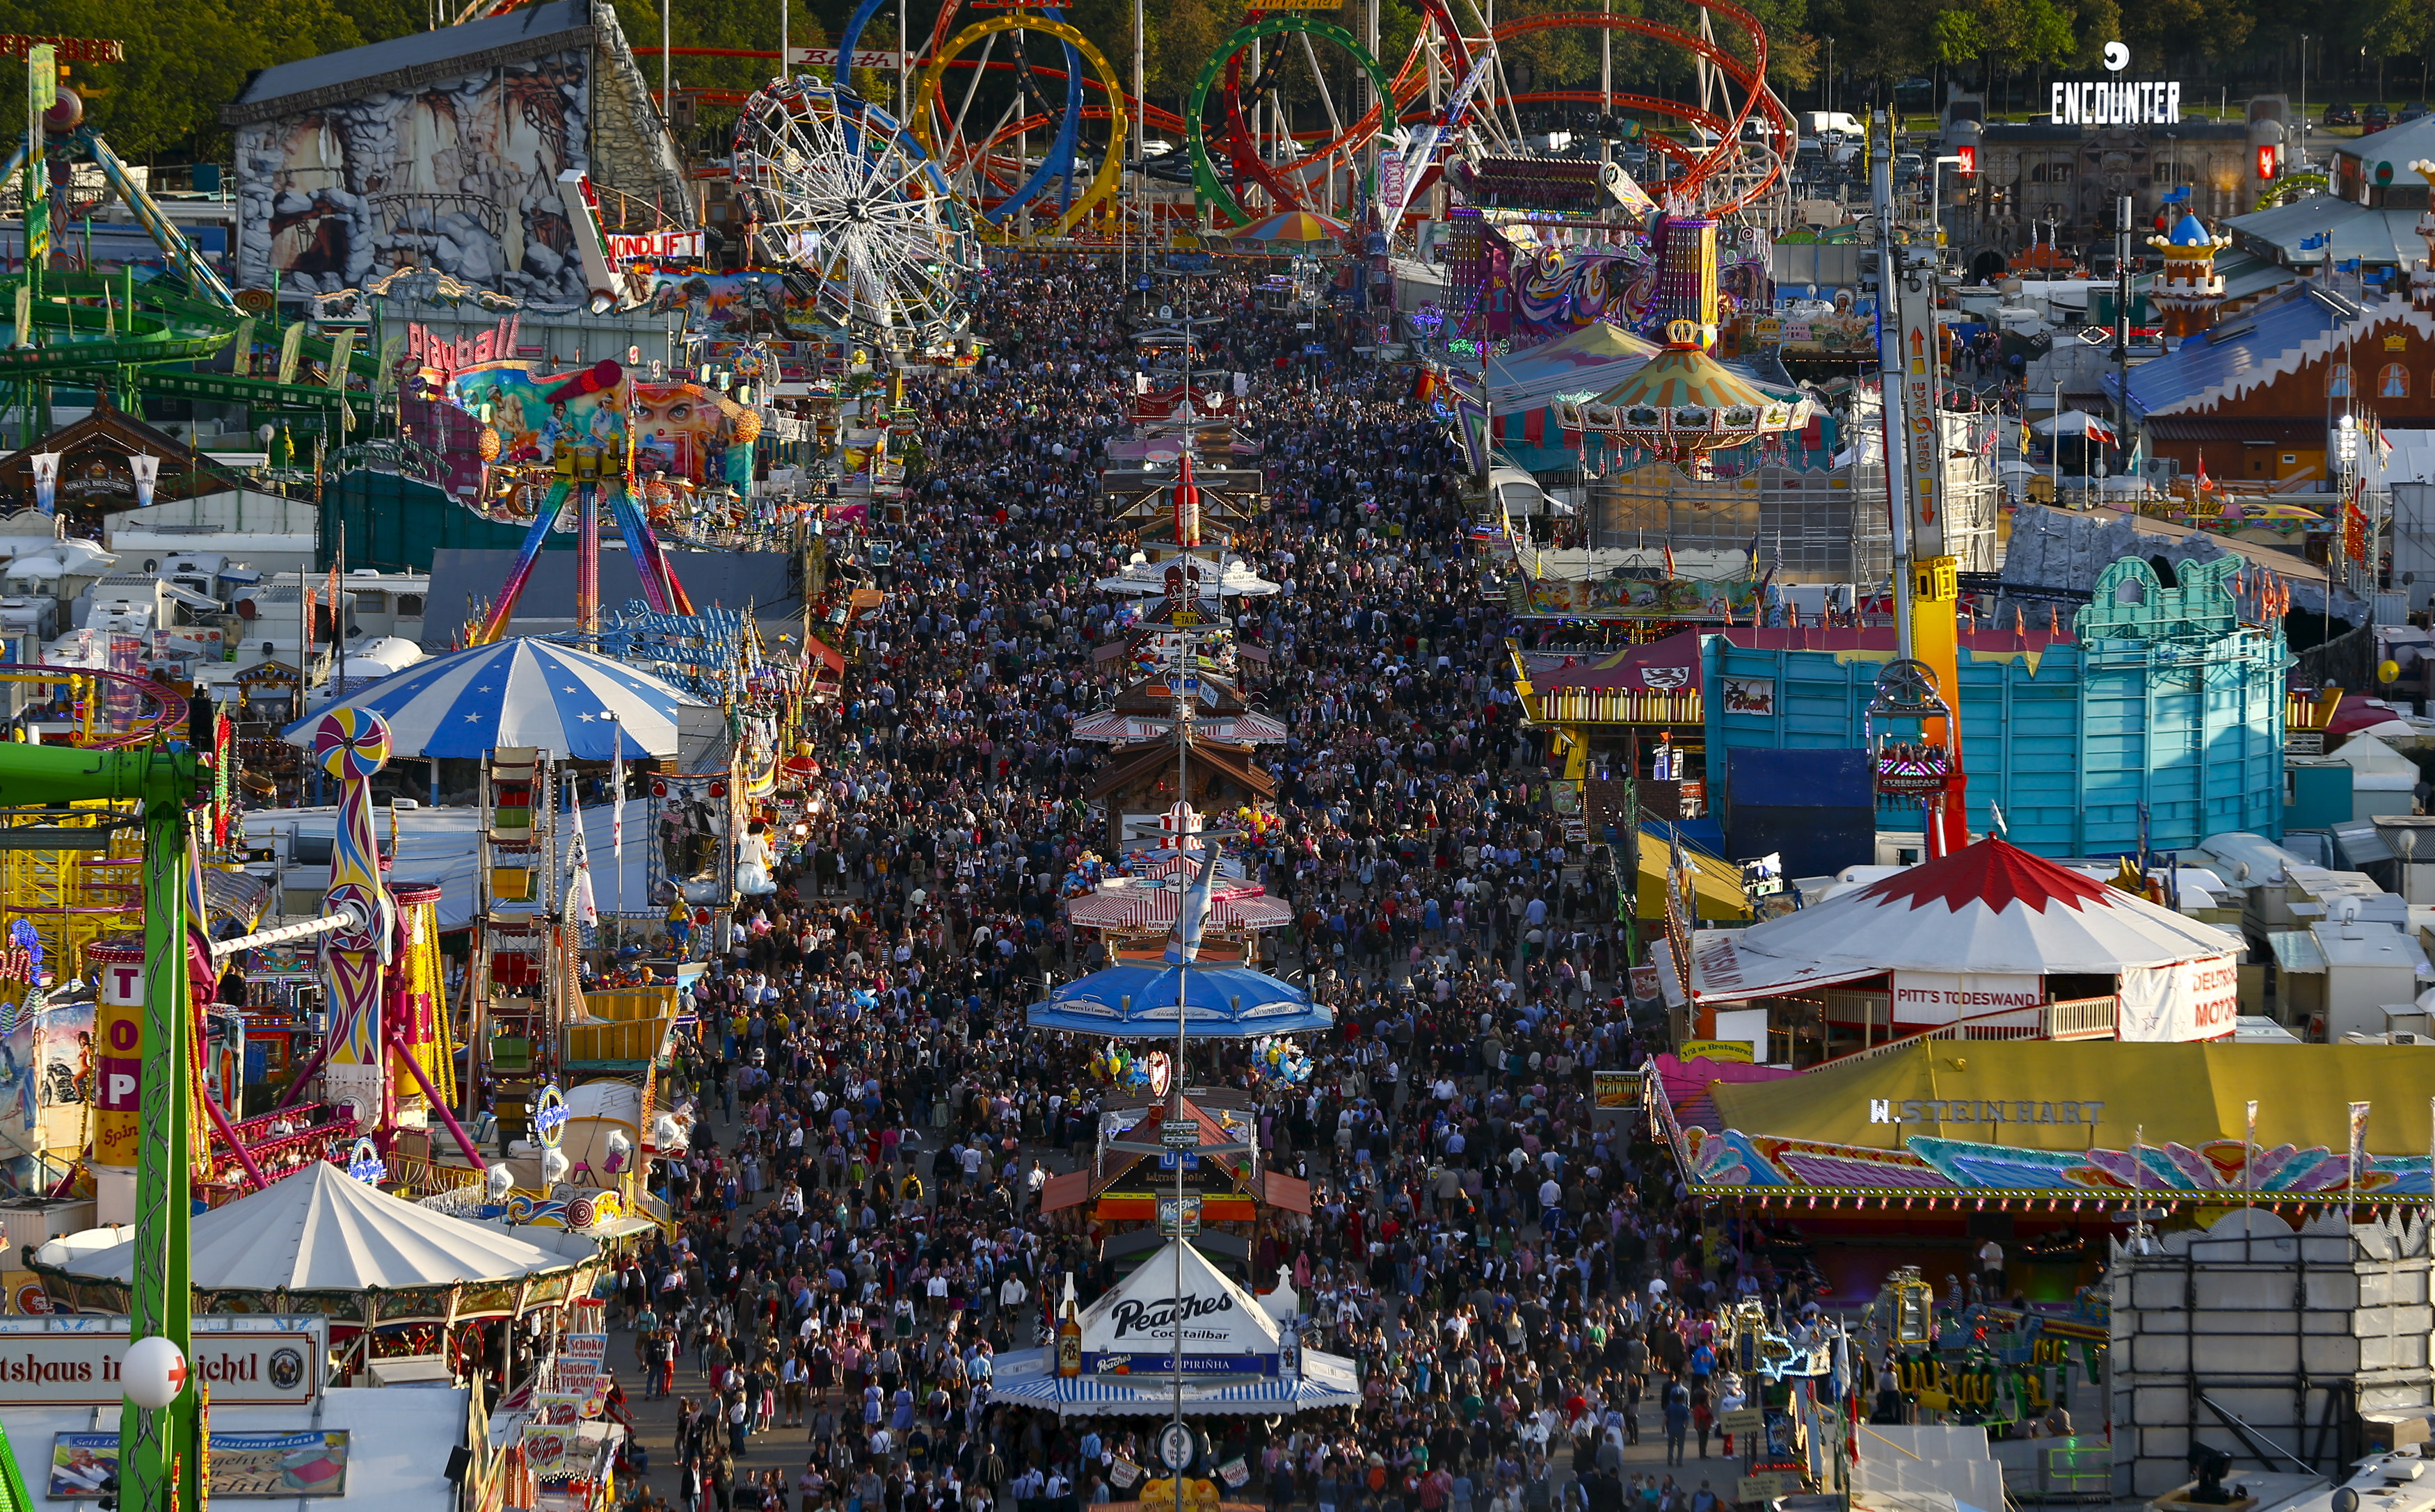 A general view shows the festival ground during the opening day of the 182nd Oktoberfest in Munich, Germany, September 19, 2015. Millions of beer drinkers from around the world will come to the Bavarian capital over the next two weeks for Oktoberfest, which starts today and runs until October 4, 2015. REUTERS/Michael Dalder - RTS1WGE